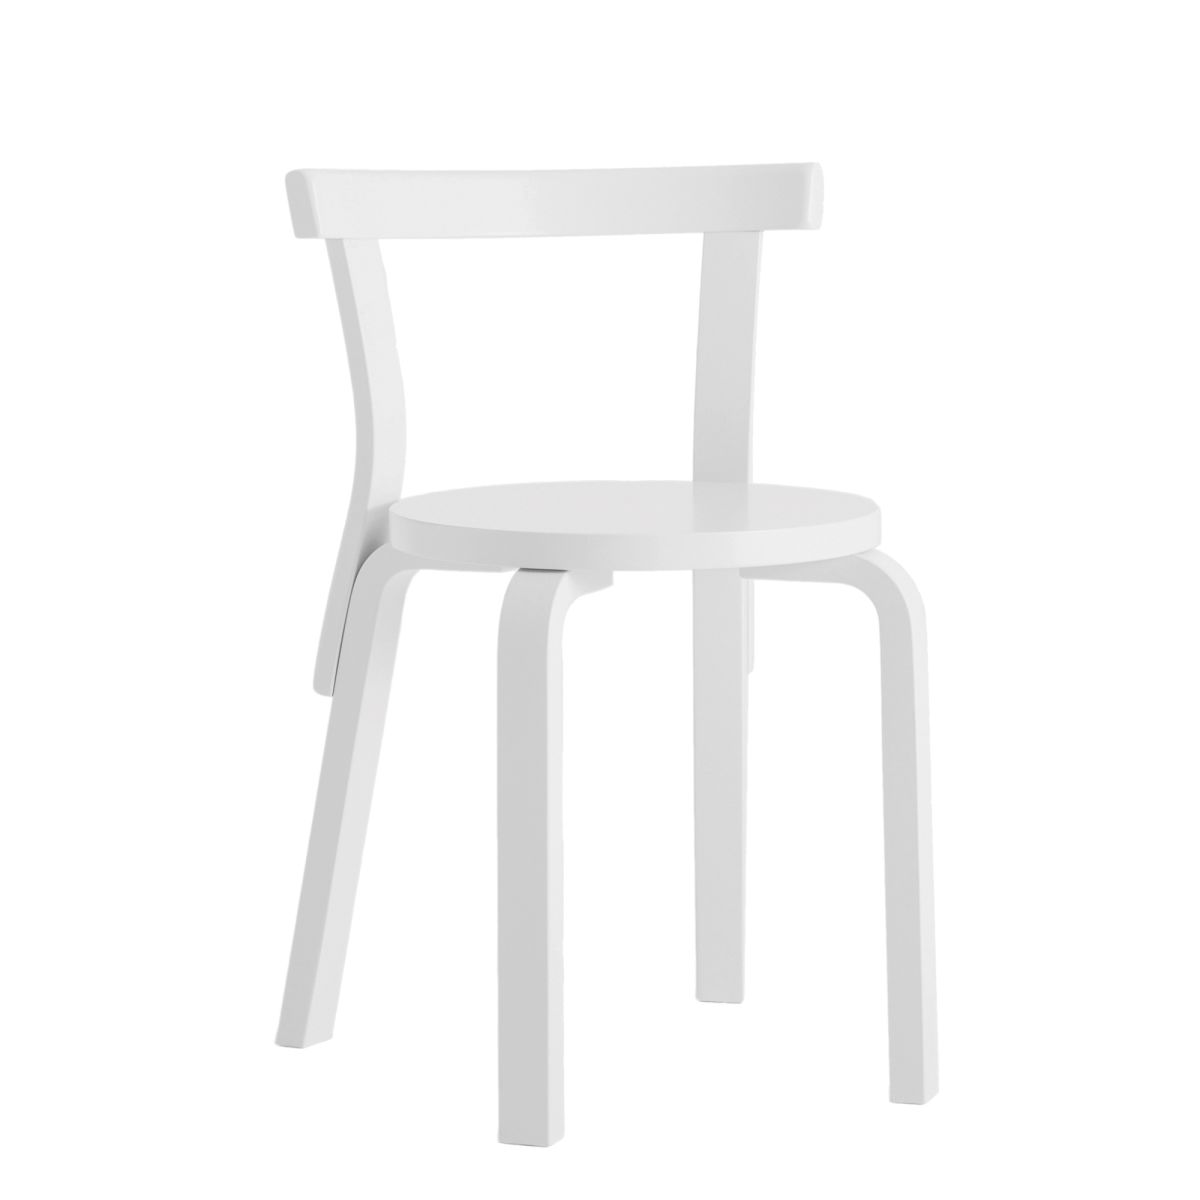 Chair 68 white lacquer